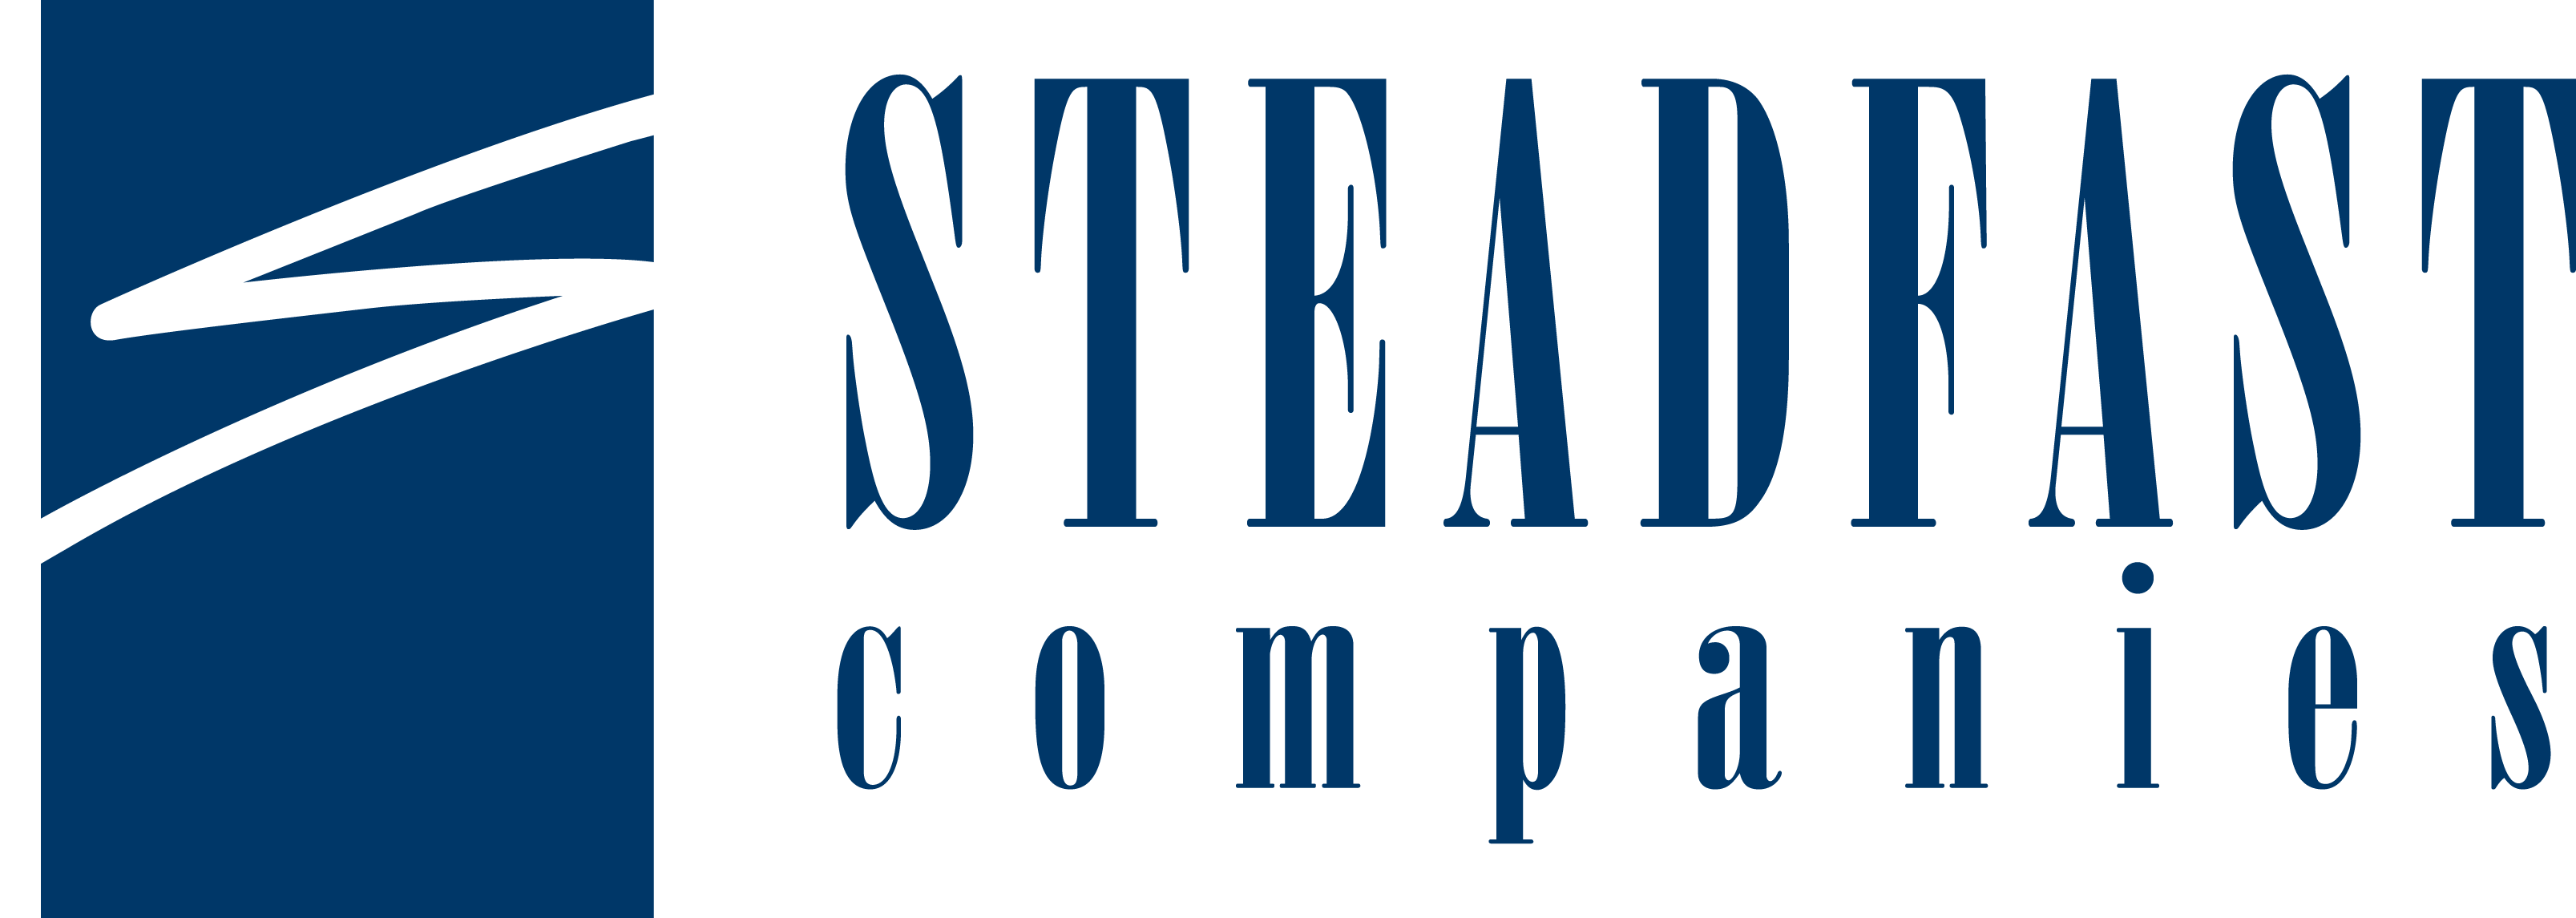 Steadfast-Companies-Navy-PNG-11